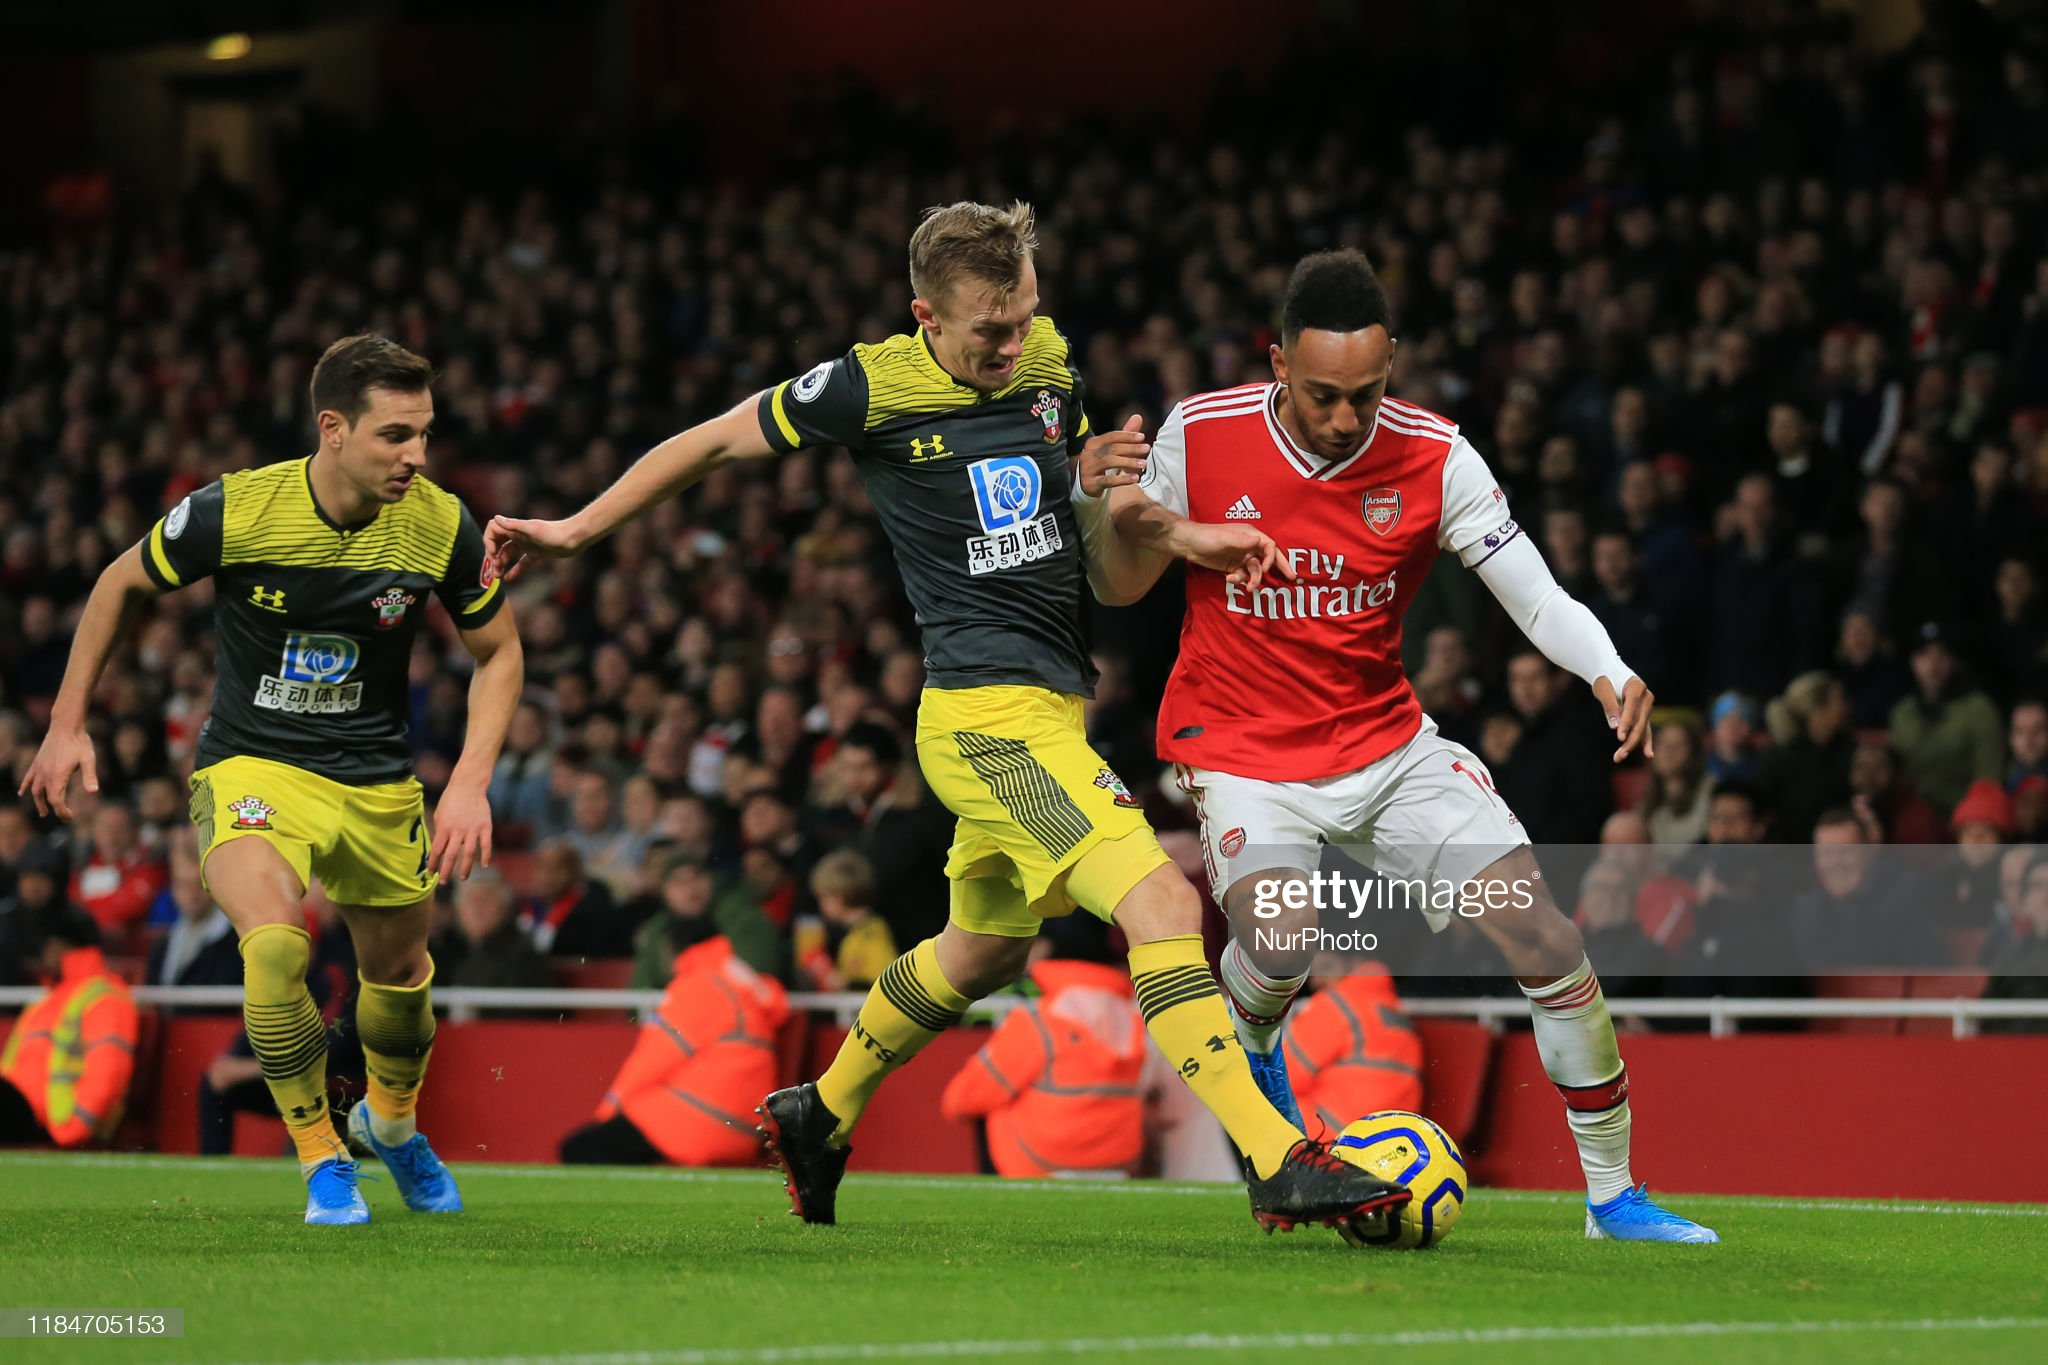 Southampton vs Arsenal Preview, prediction and odds